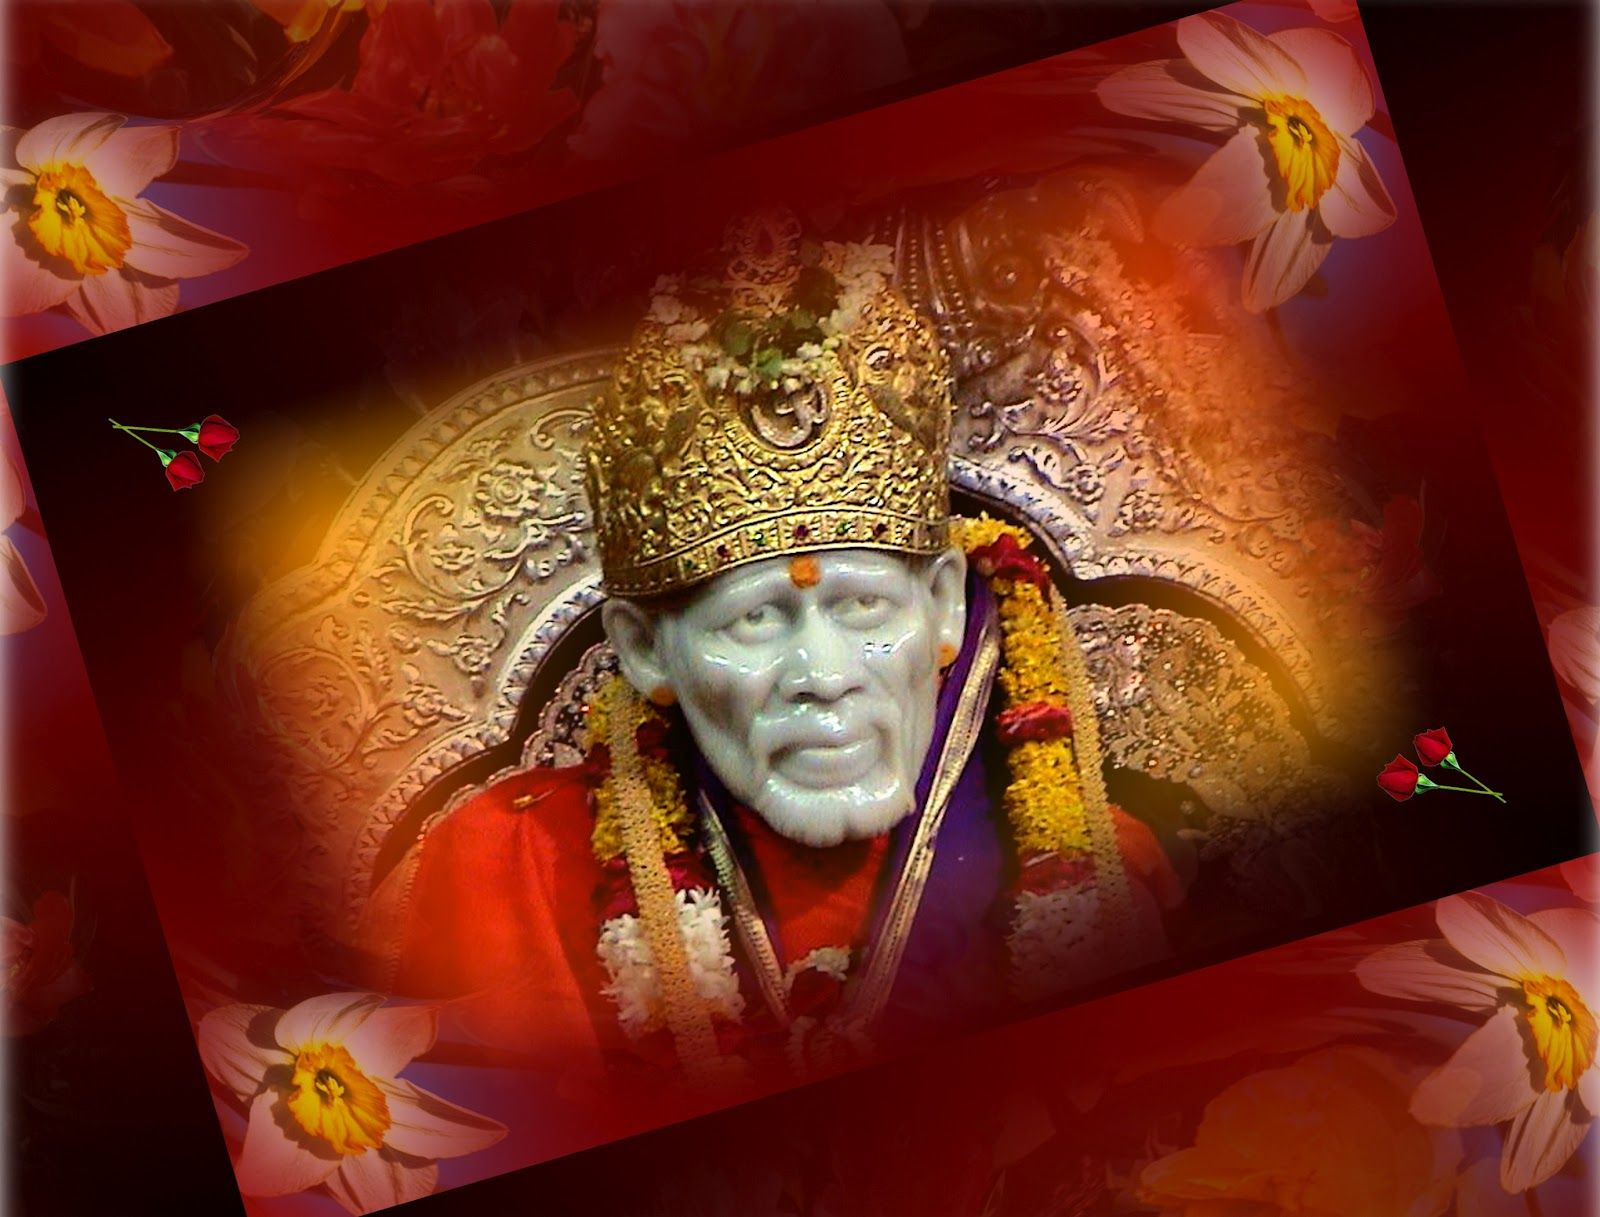 Hd wallpaper sai baba - Sai Baba Hd Wallpapers 1920x1080 Archives Hd Wallpapers Buzz